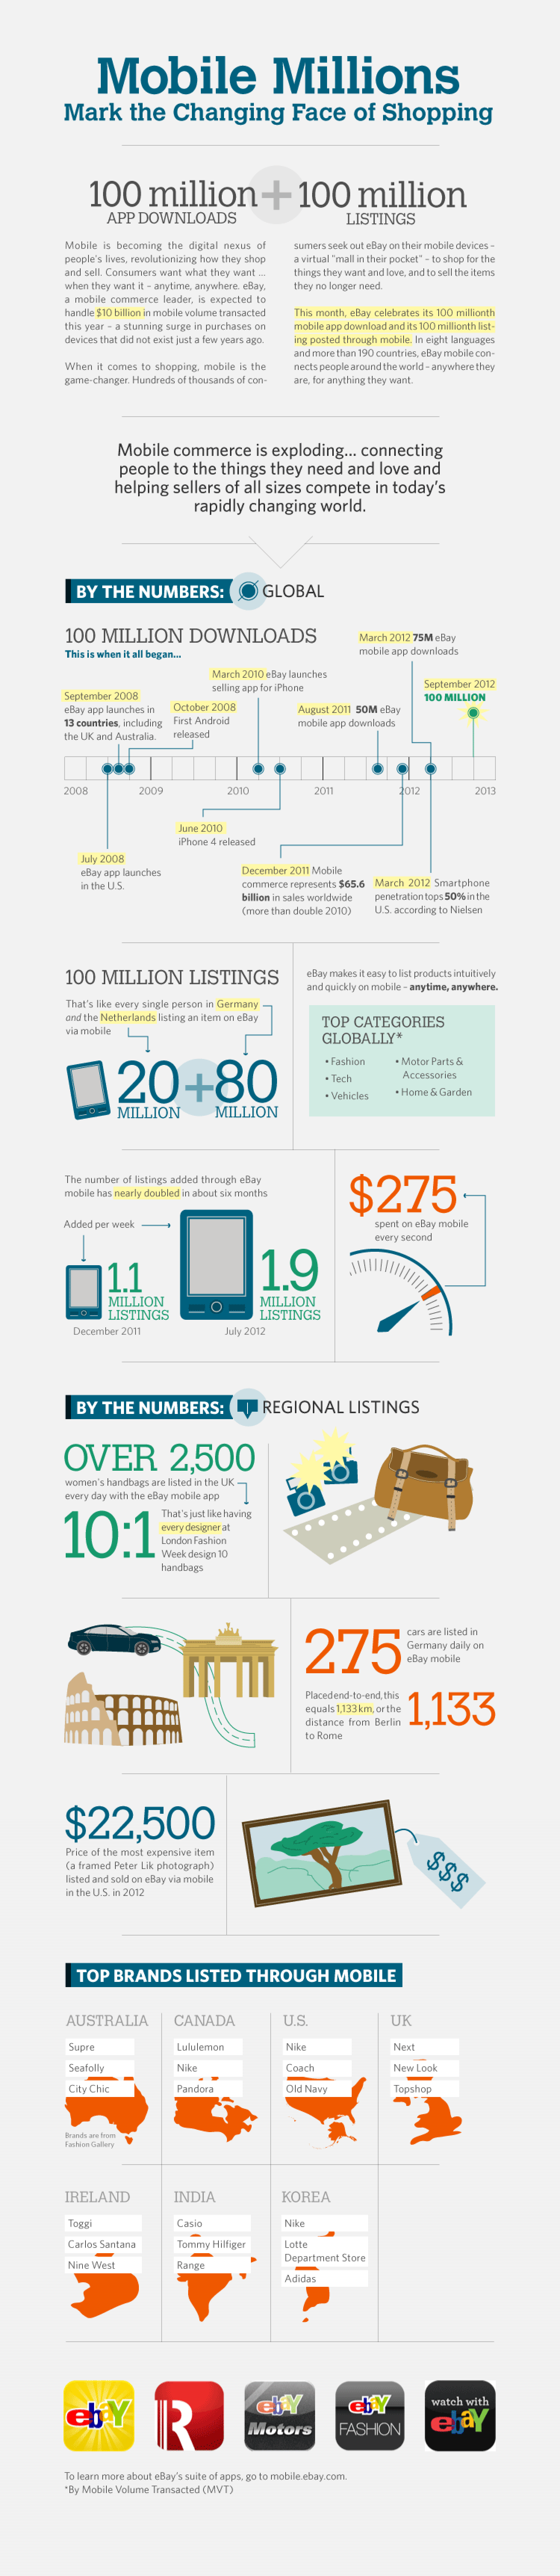 Mobile Millions Infographic